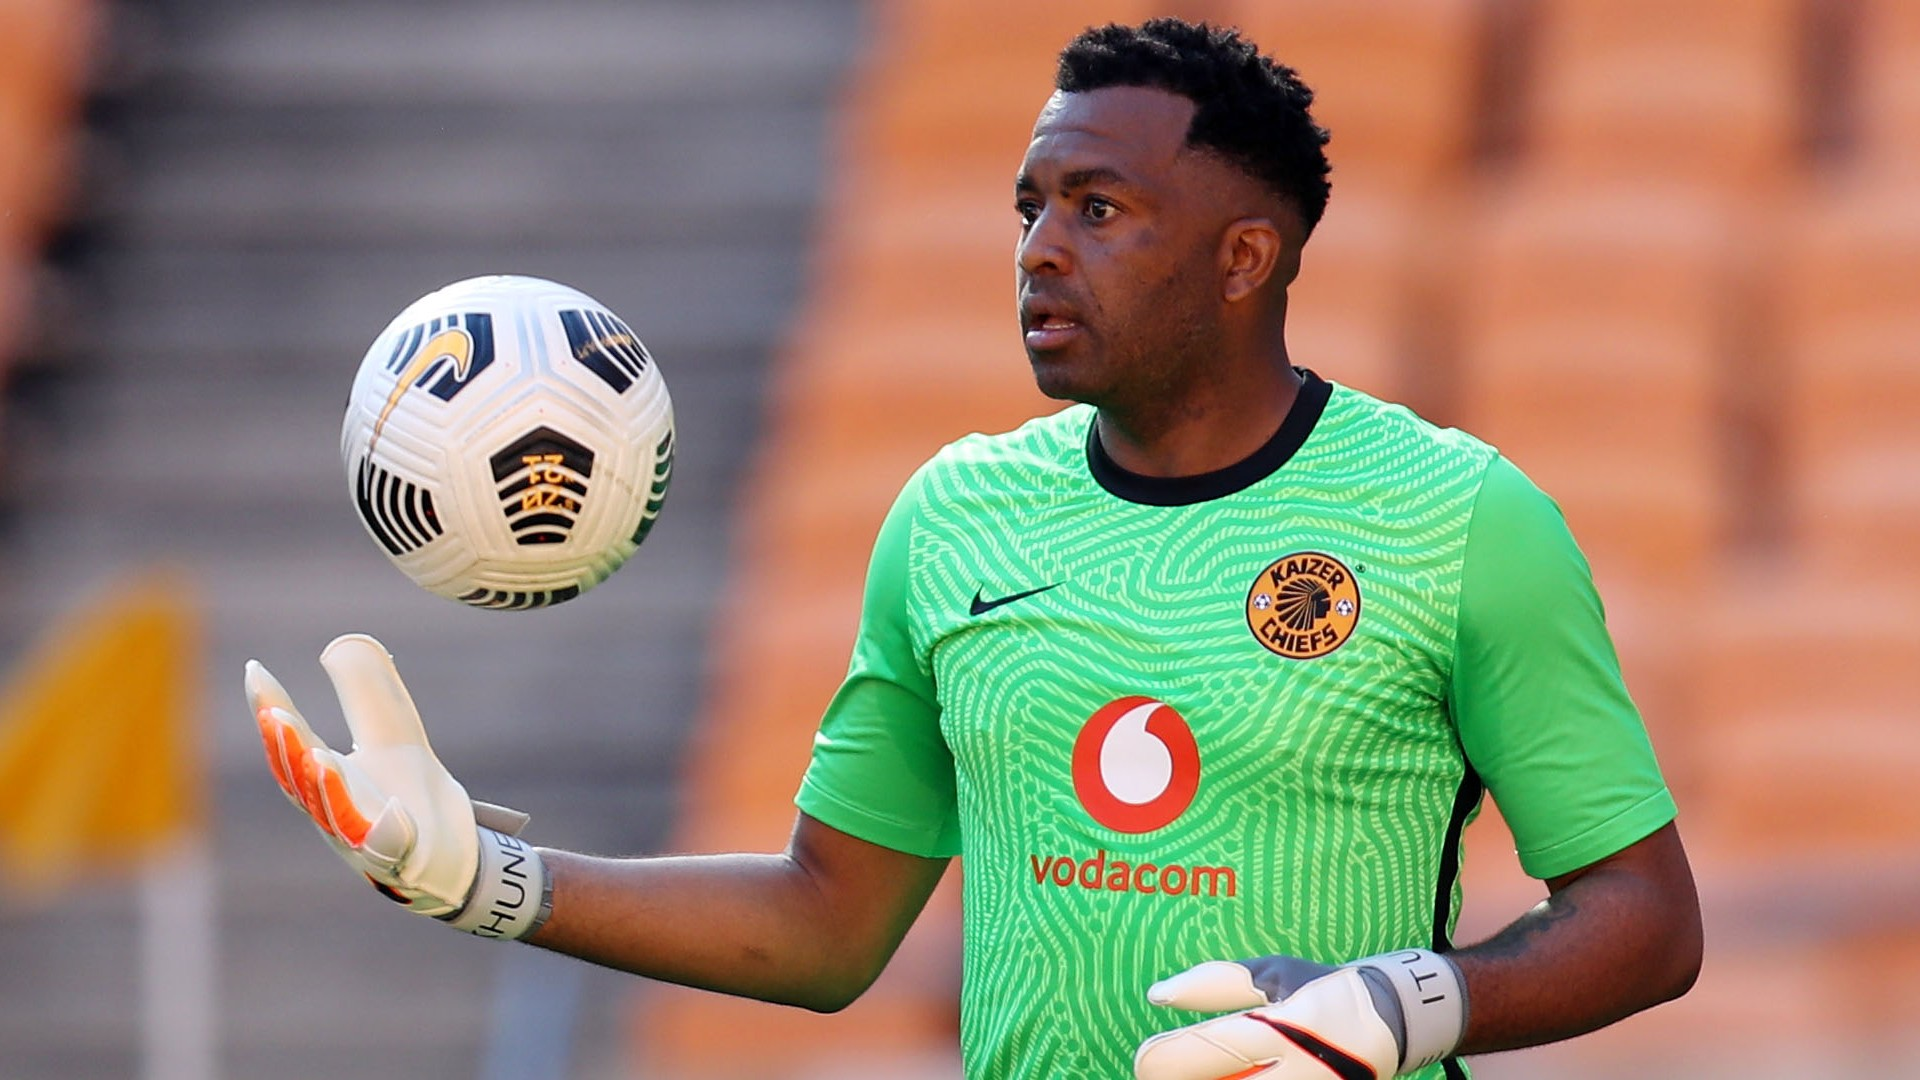 Kaizer Chiefs player ratings after humiliating defeat to Wydad Casablanca